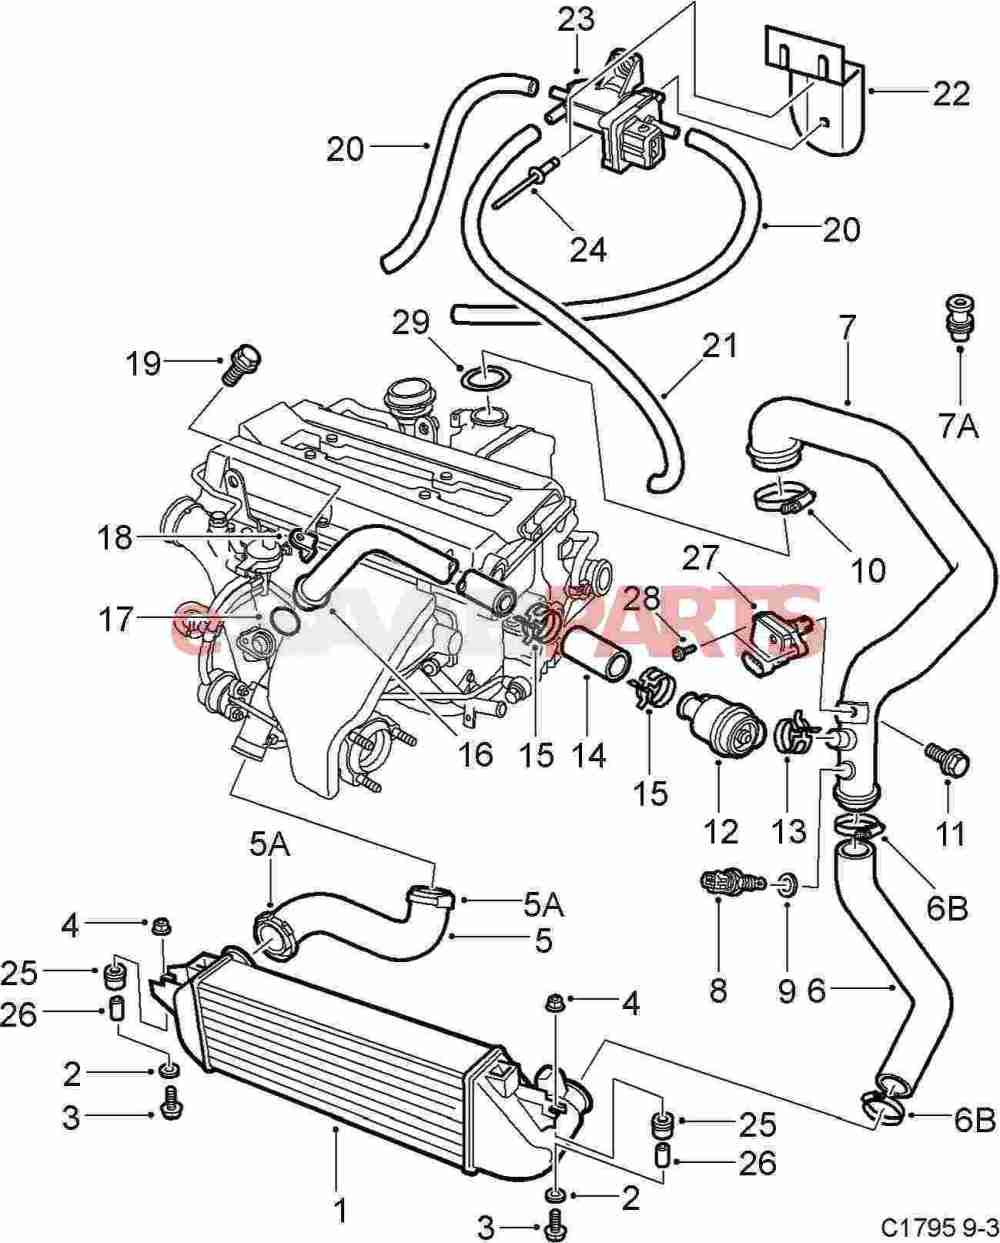 medium resolution of 2007 saab 9 3 engine diagram blog wiring diagram 03 saab 9 3 engine diagram